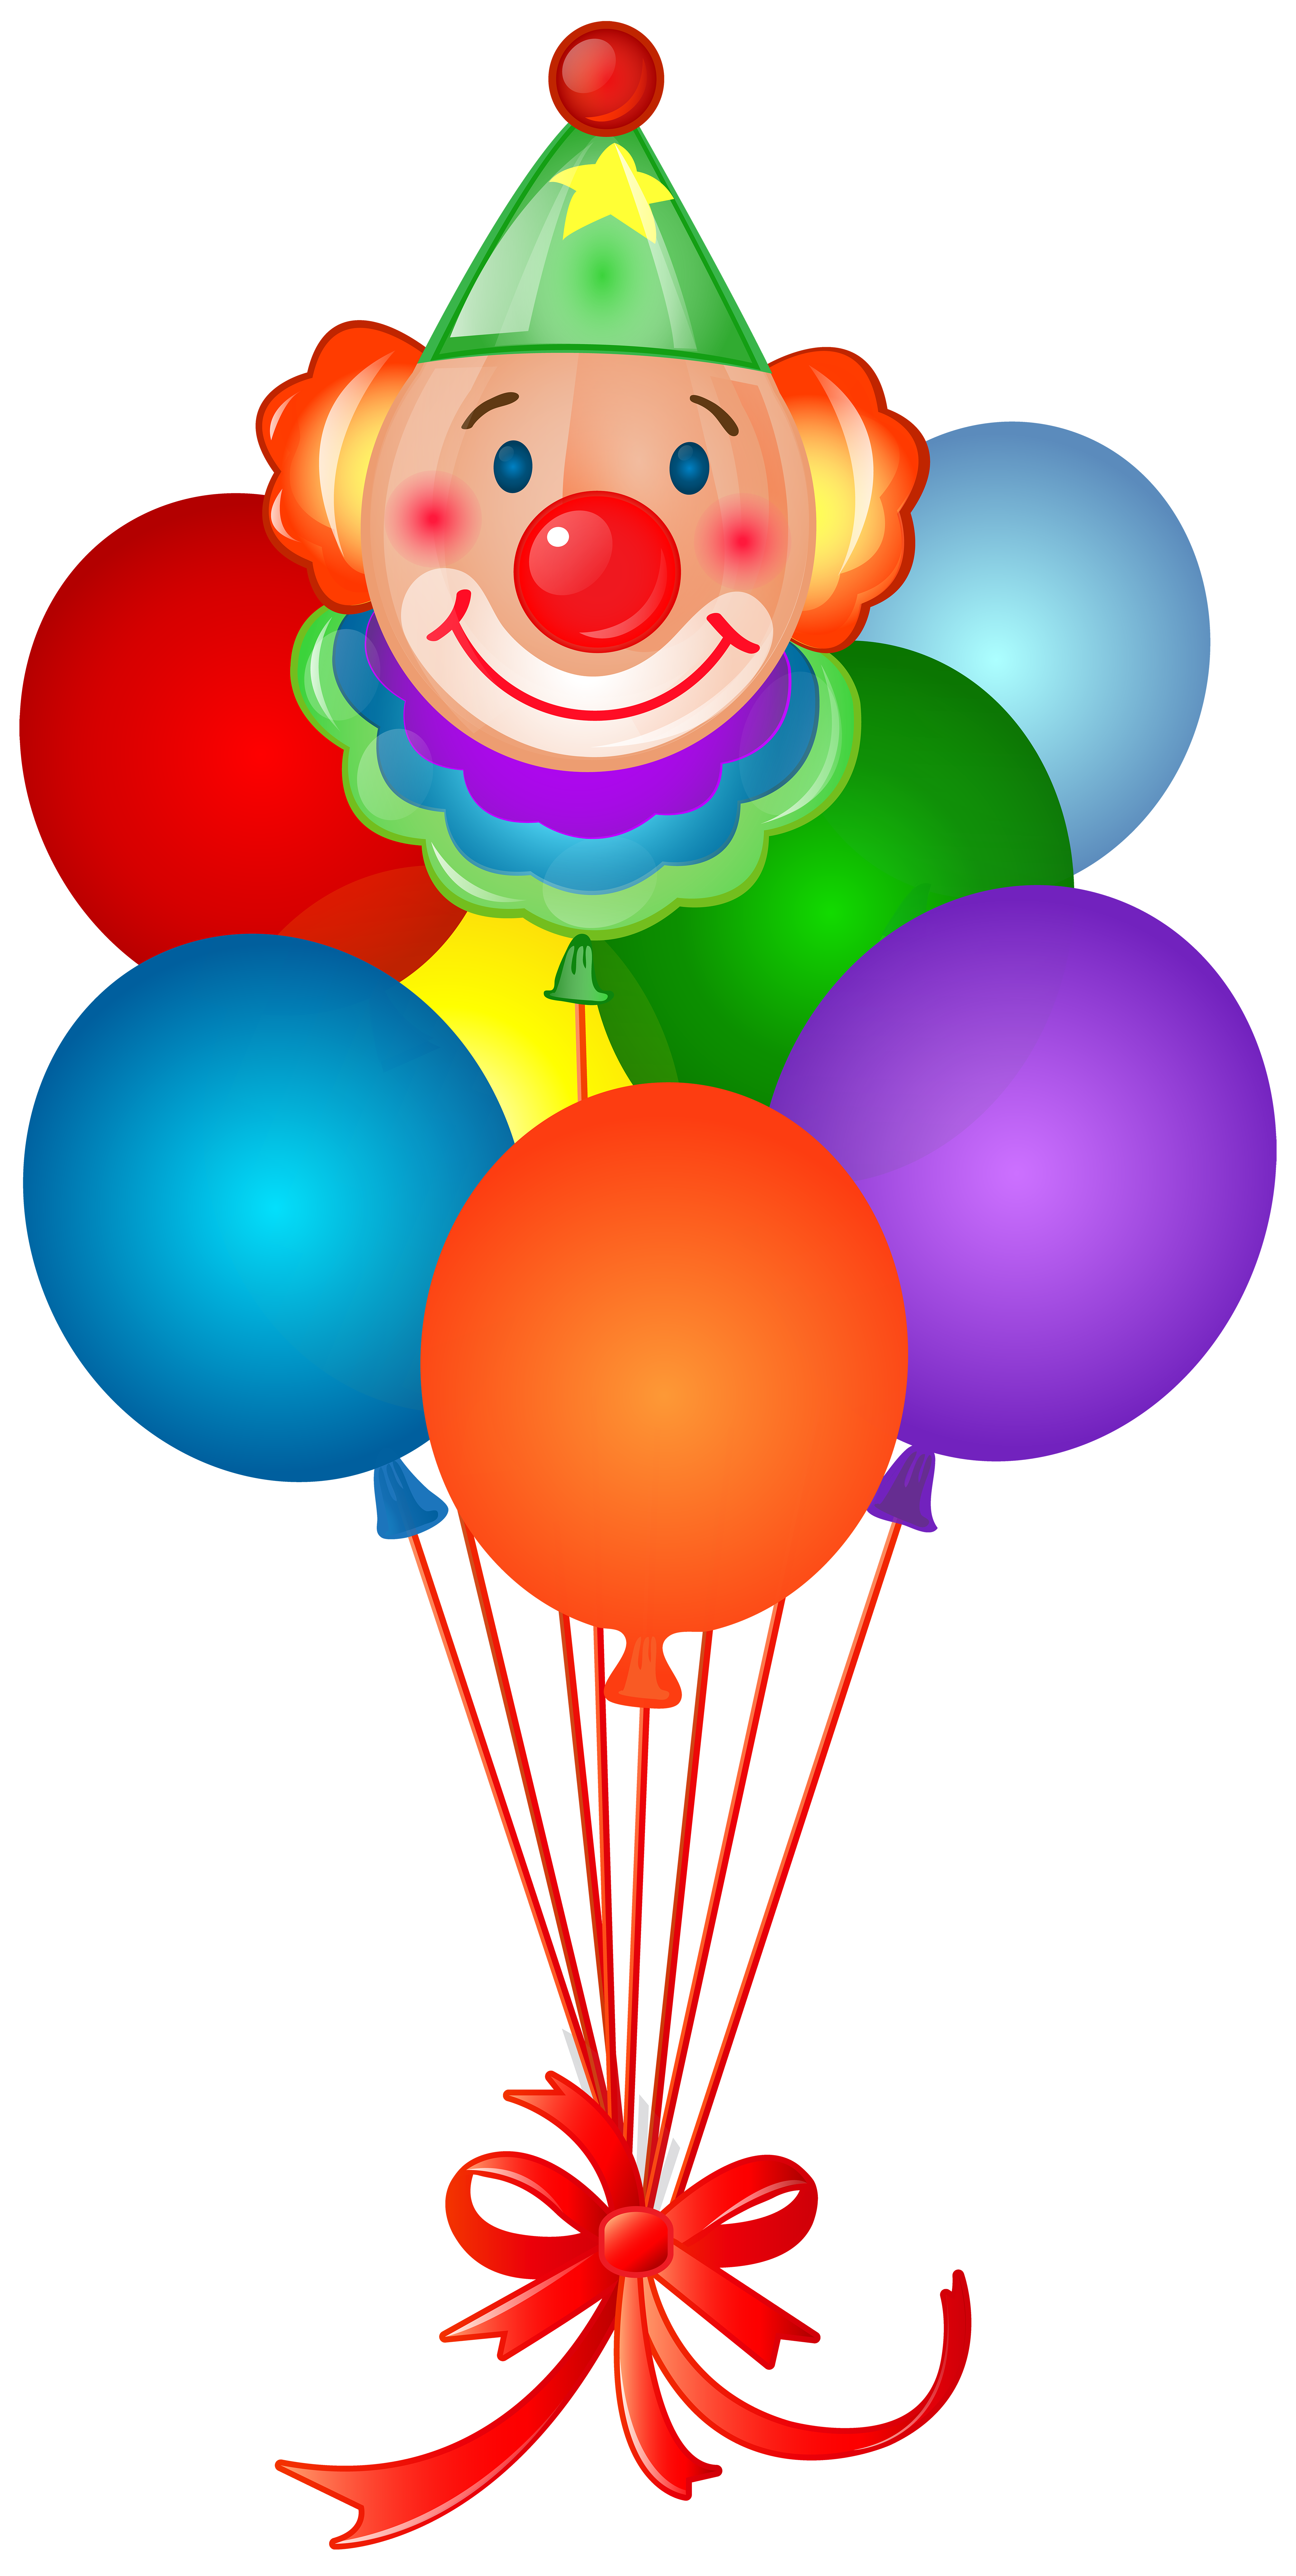 Clown with balloon clipart clip art black and white stock Clown With Balloon Png & Free Clown With Balloon.png Transparent ... clip art black and white stock